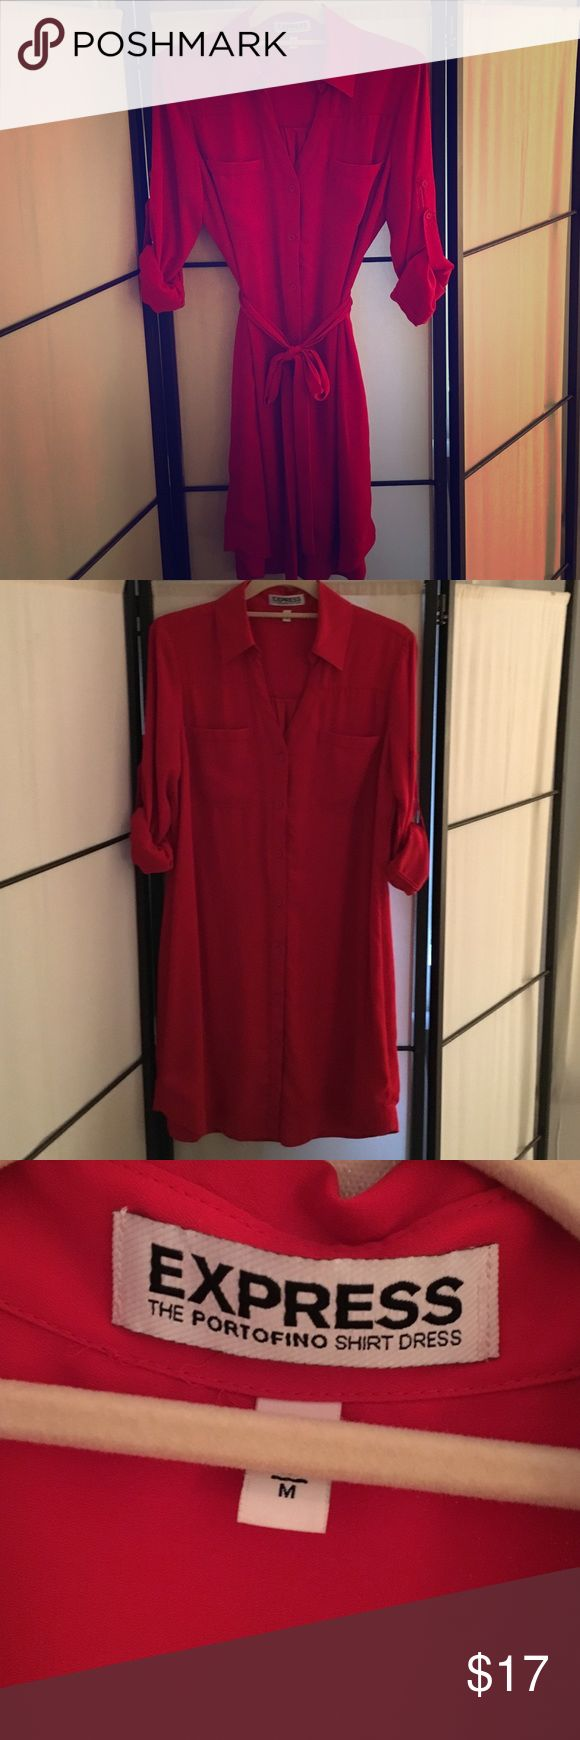 Express Portofino red shirt dress with lining. Never worn. Can be worn w/or without sash. Express Dresses